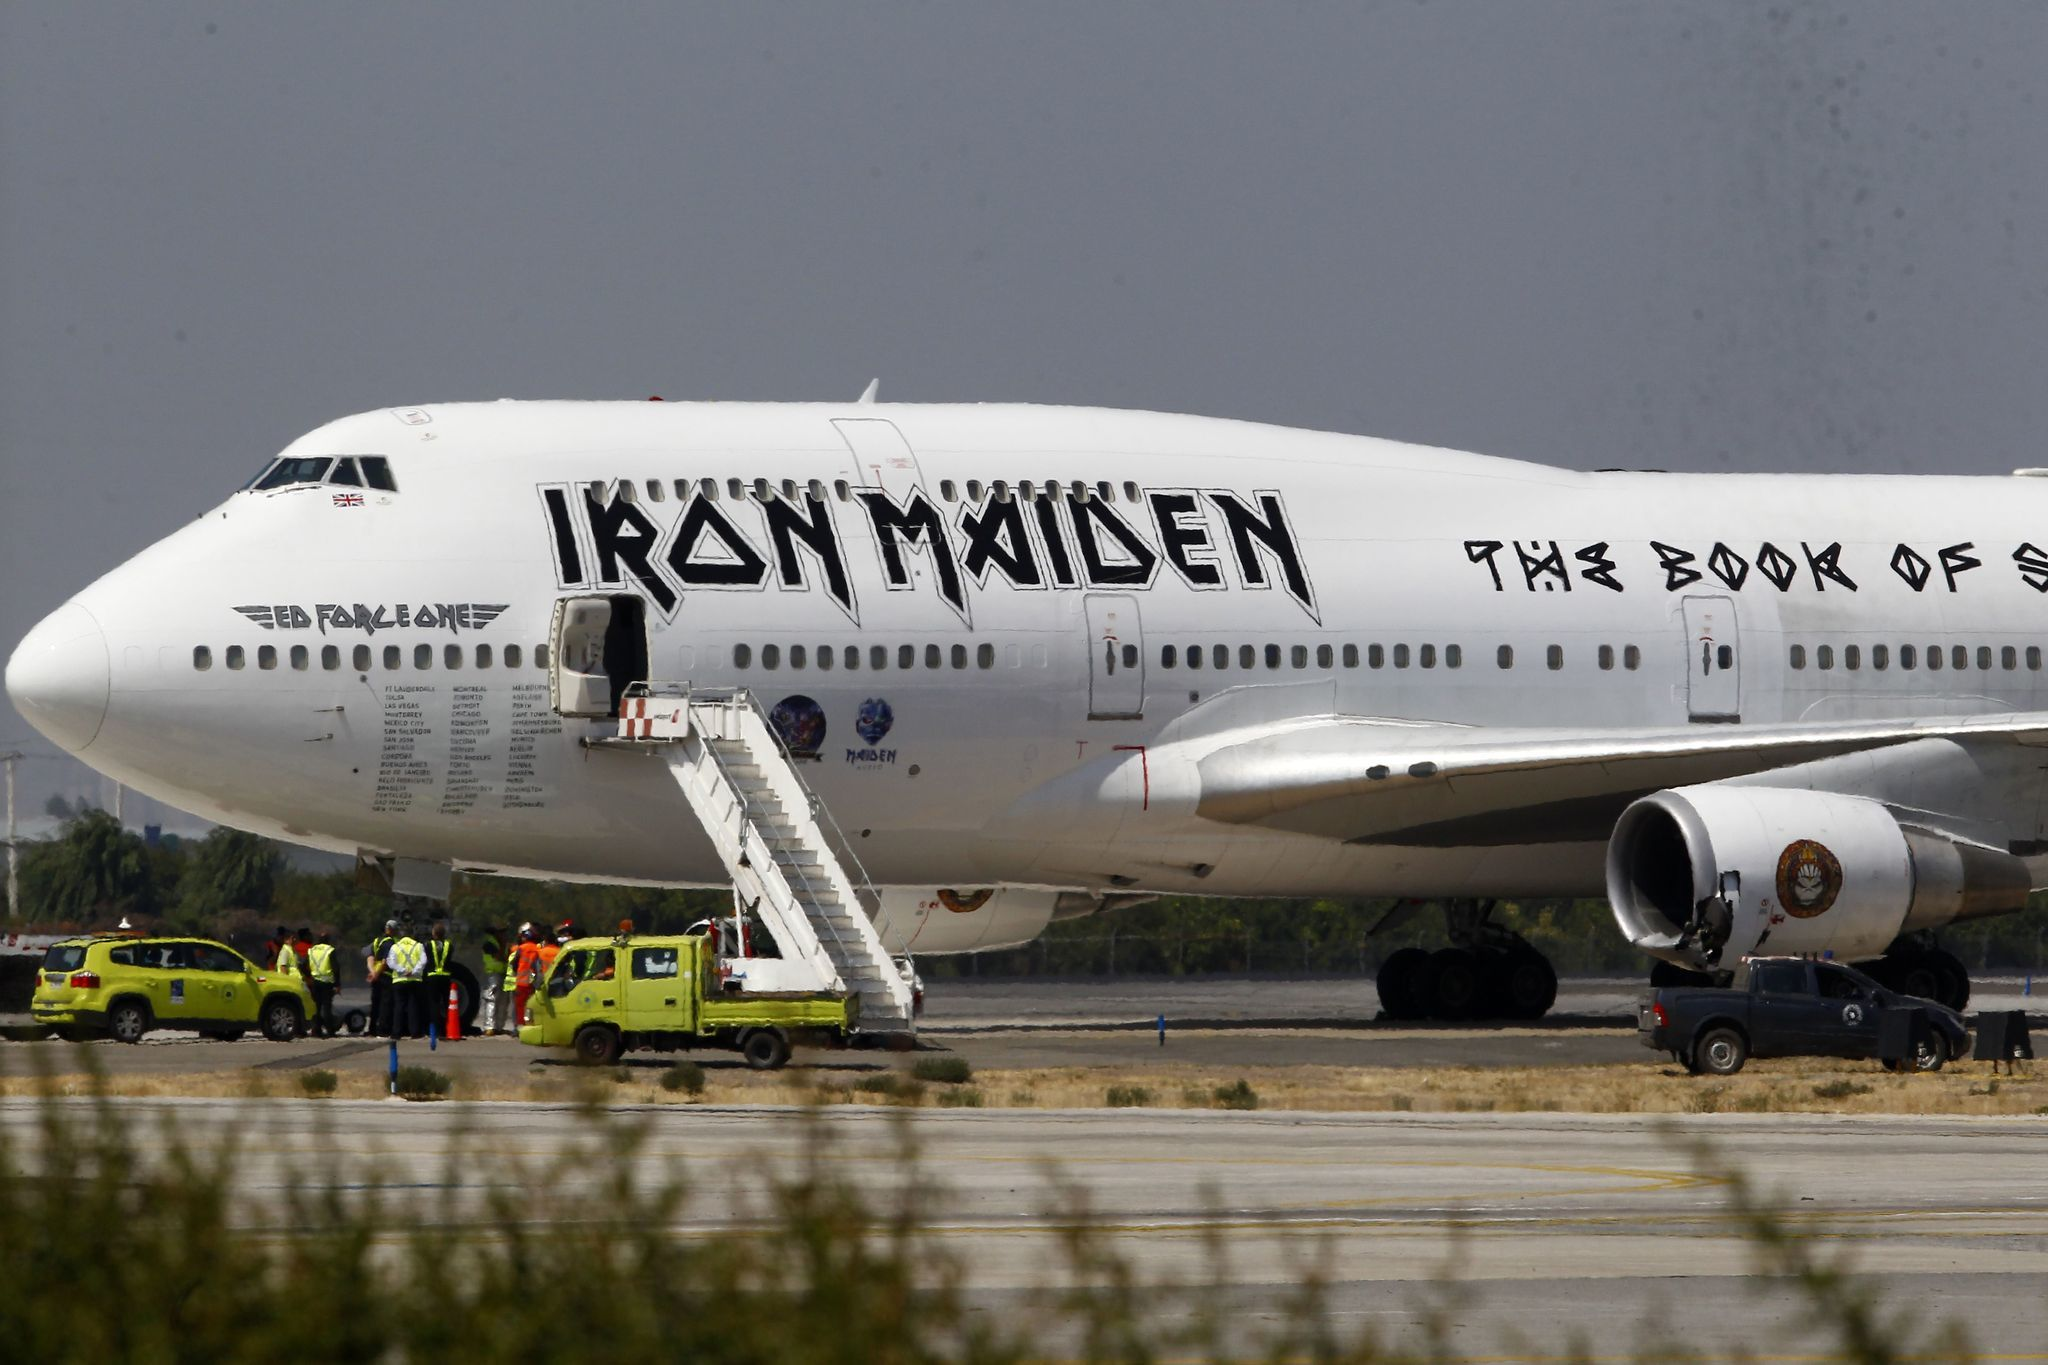 Fans excitedly track Iron Maiden's plane landing at O'Hare